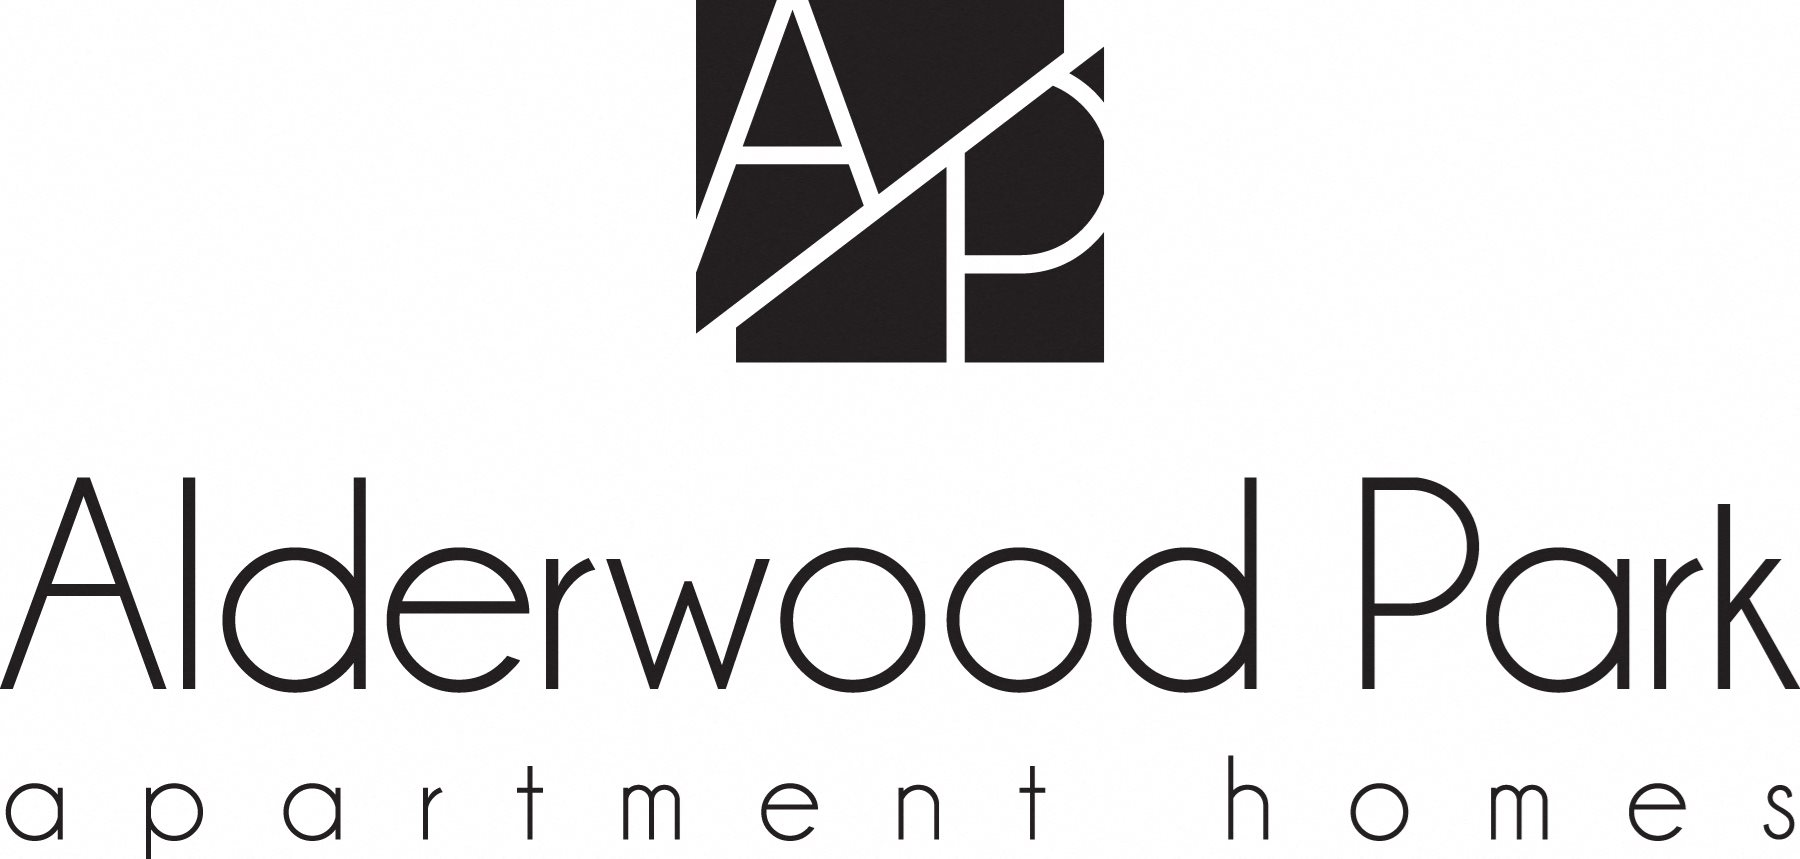 Alderood Park Apartment Homes